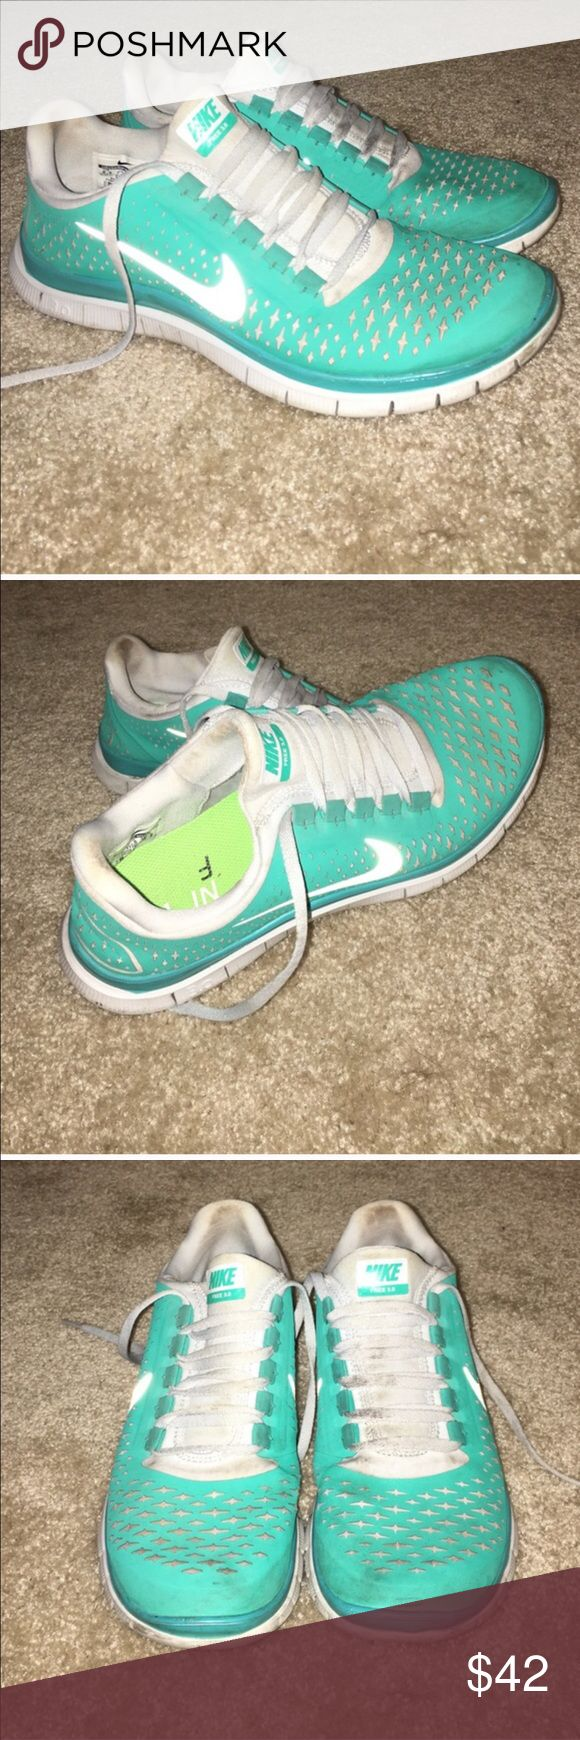 Tiffany blue Nike Tiffany blue/ mint colored Nike free runs. I'm re-poshing because the 8.5 was too big for me. Nike Shoes Athletic Shoes